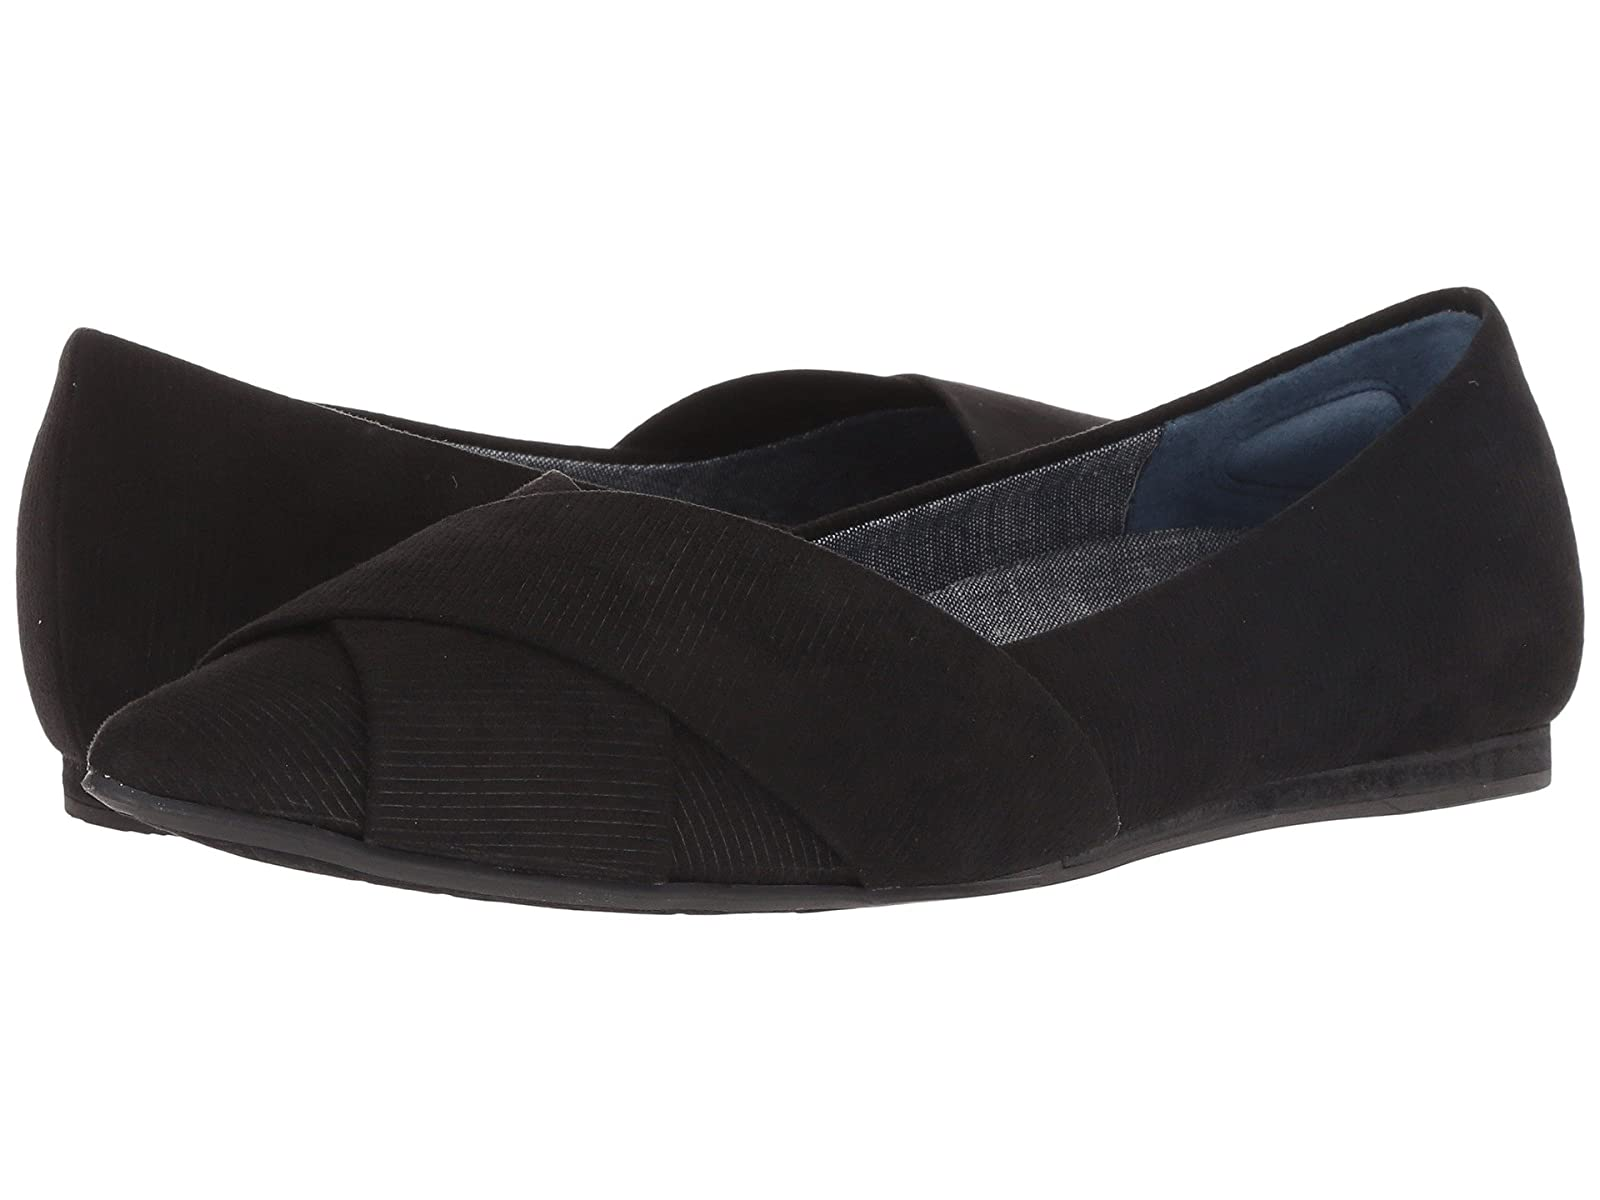 Dr. Scholl's LomaAtmospheric grades have affordable shoes